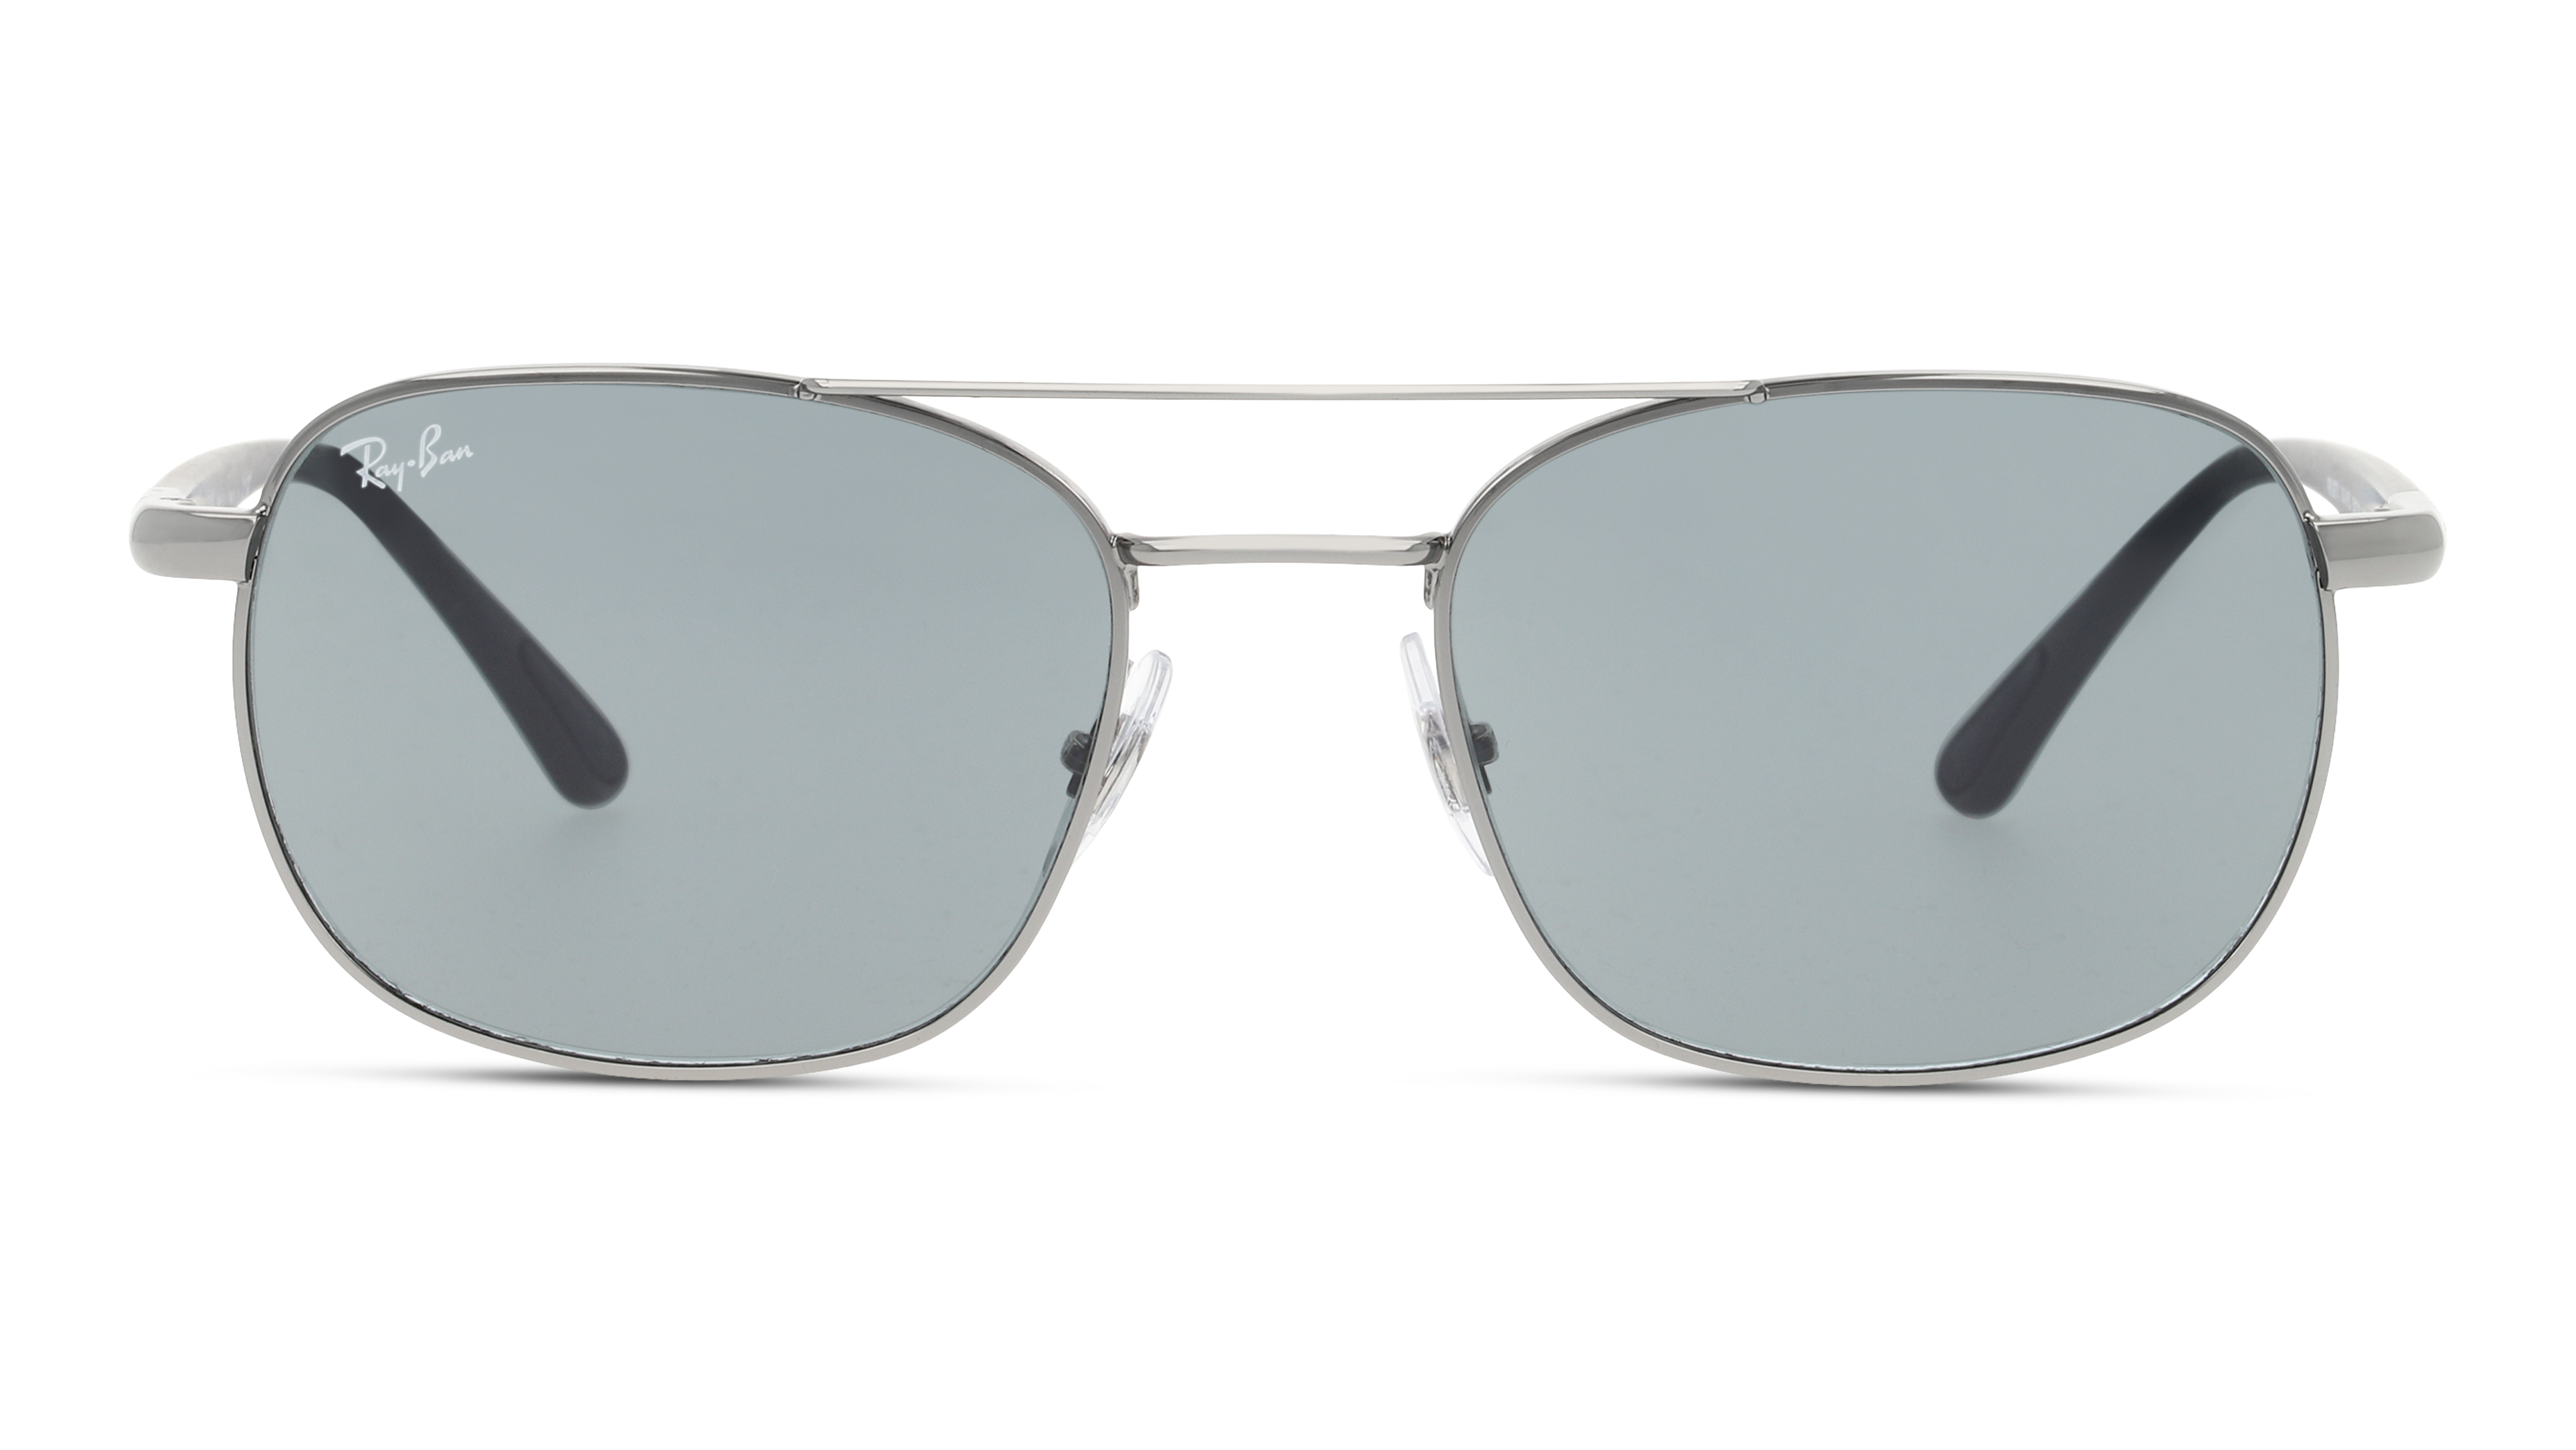 Front Ray-Ban Ray-Ban 0RB3670 004/R5 54/19 Grijs/Blauw